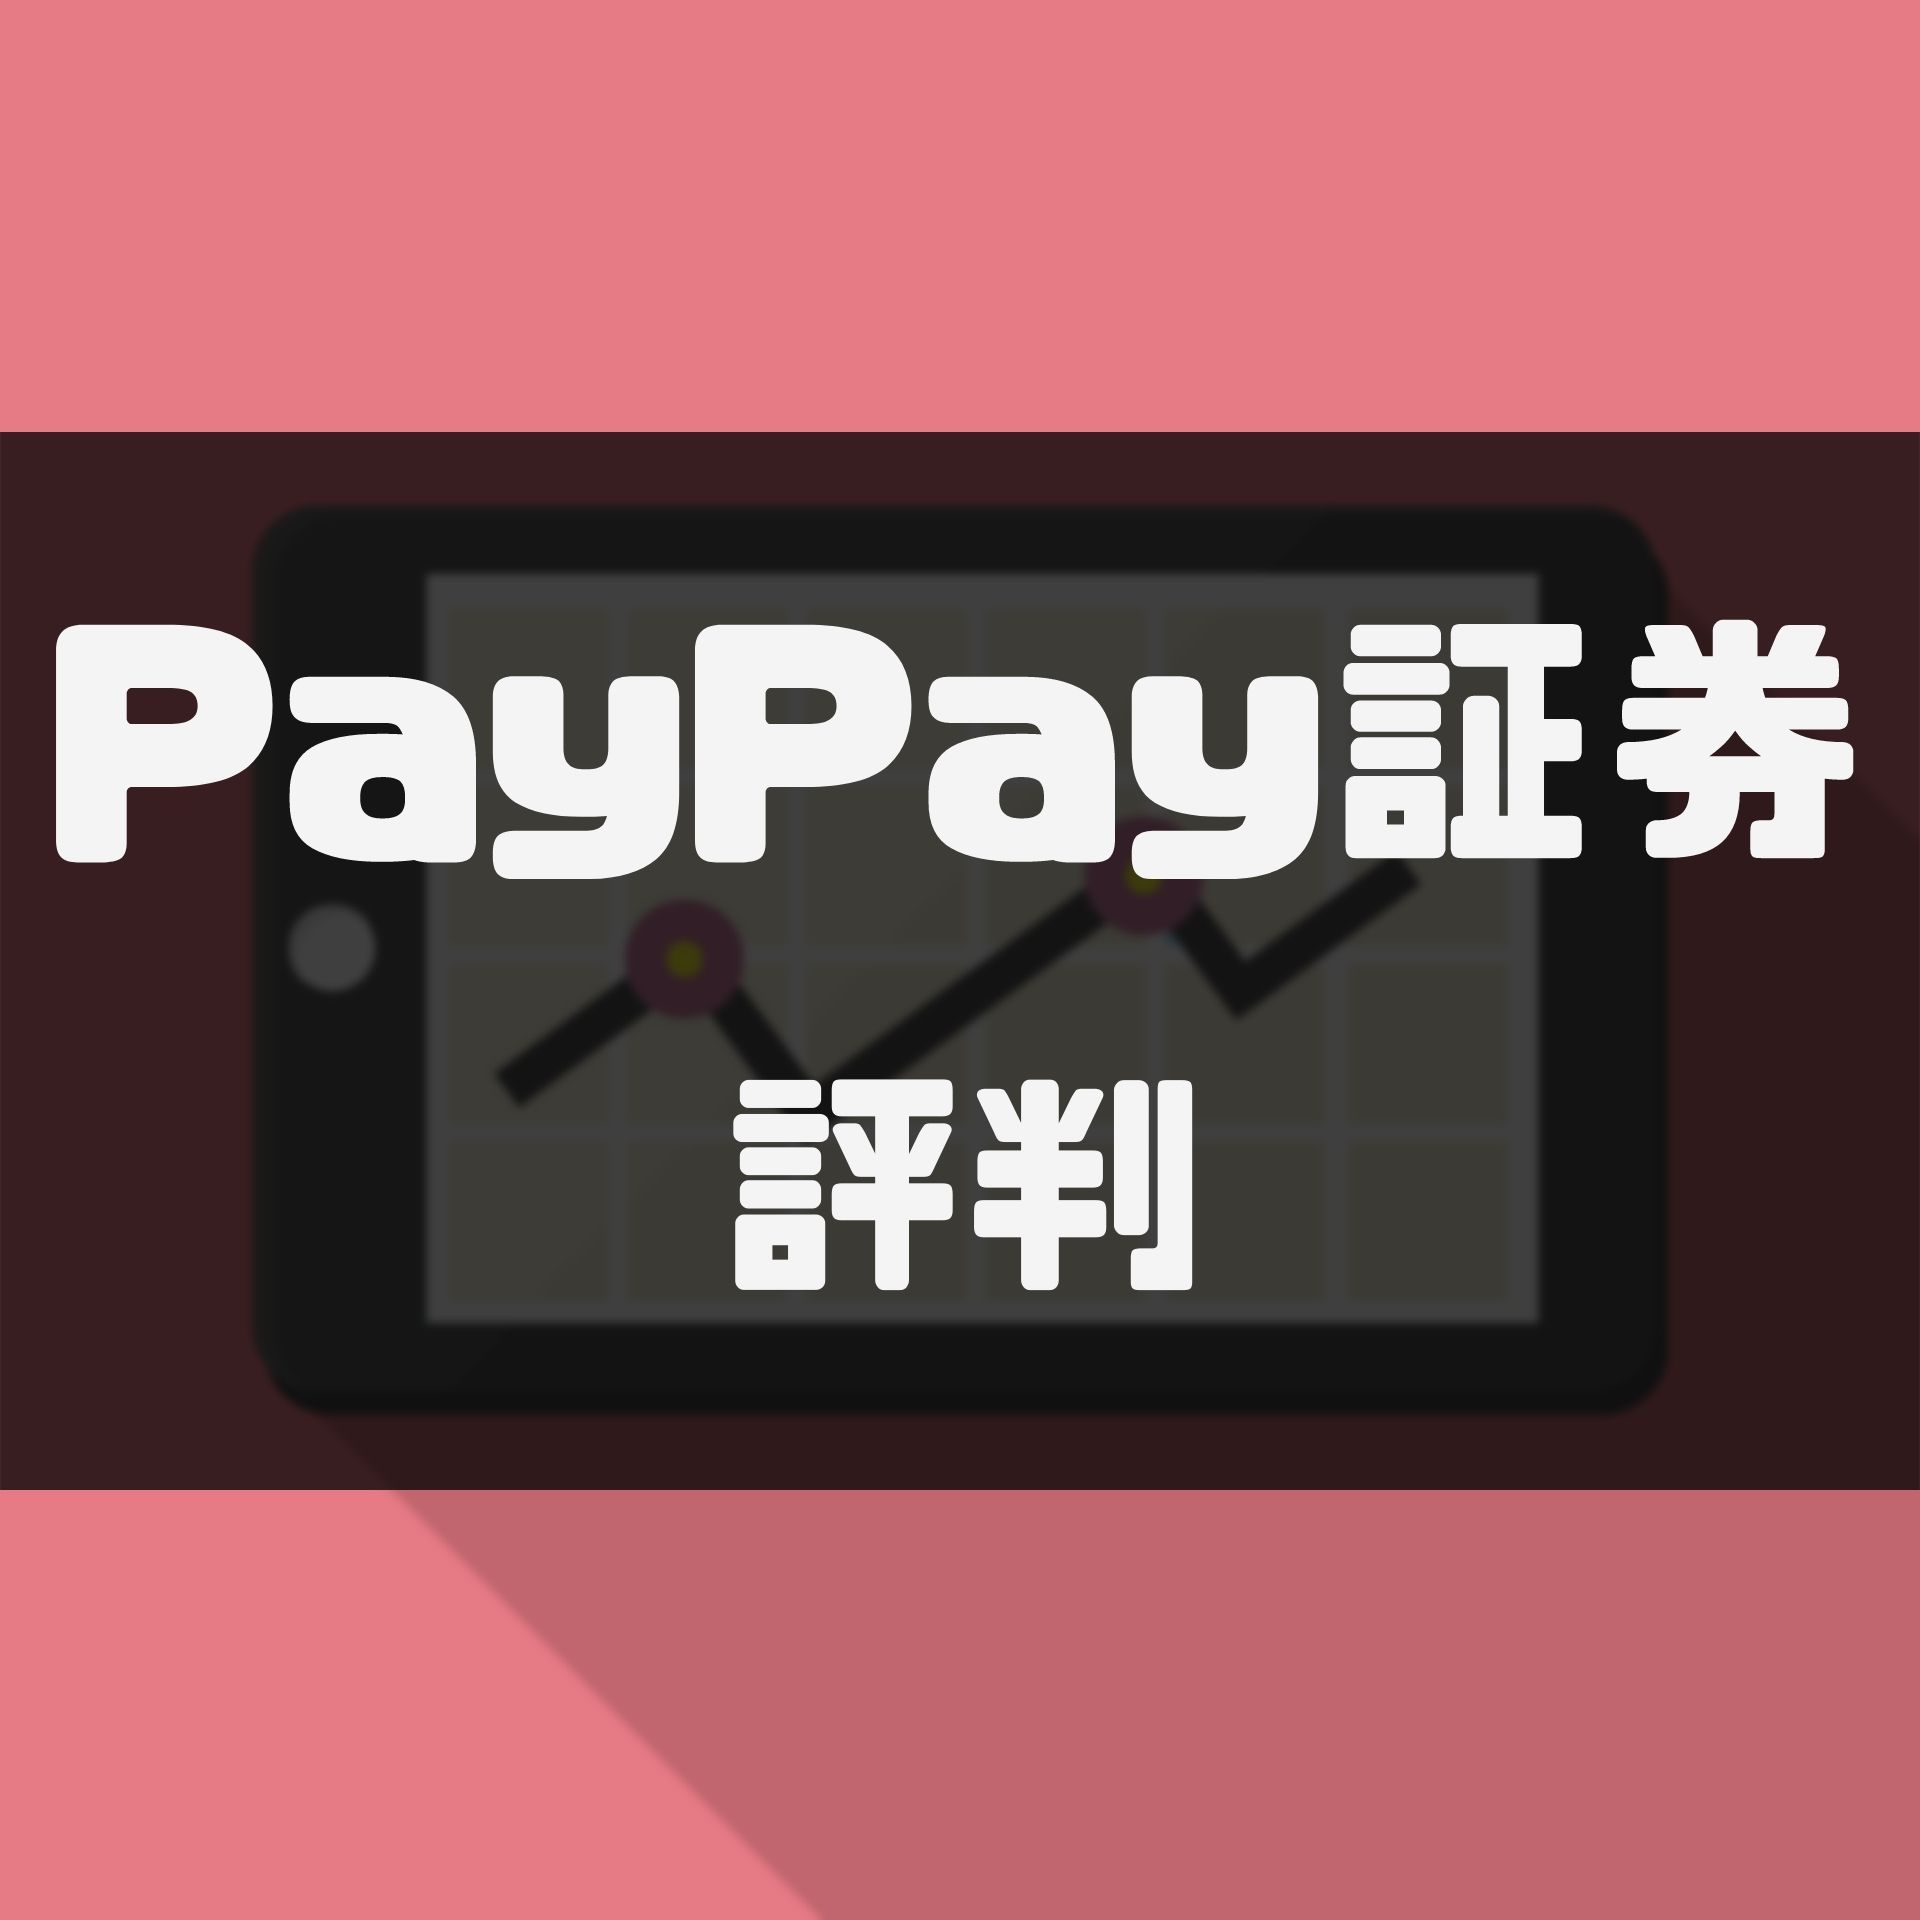 PayPay証券評判_サムネイル